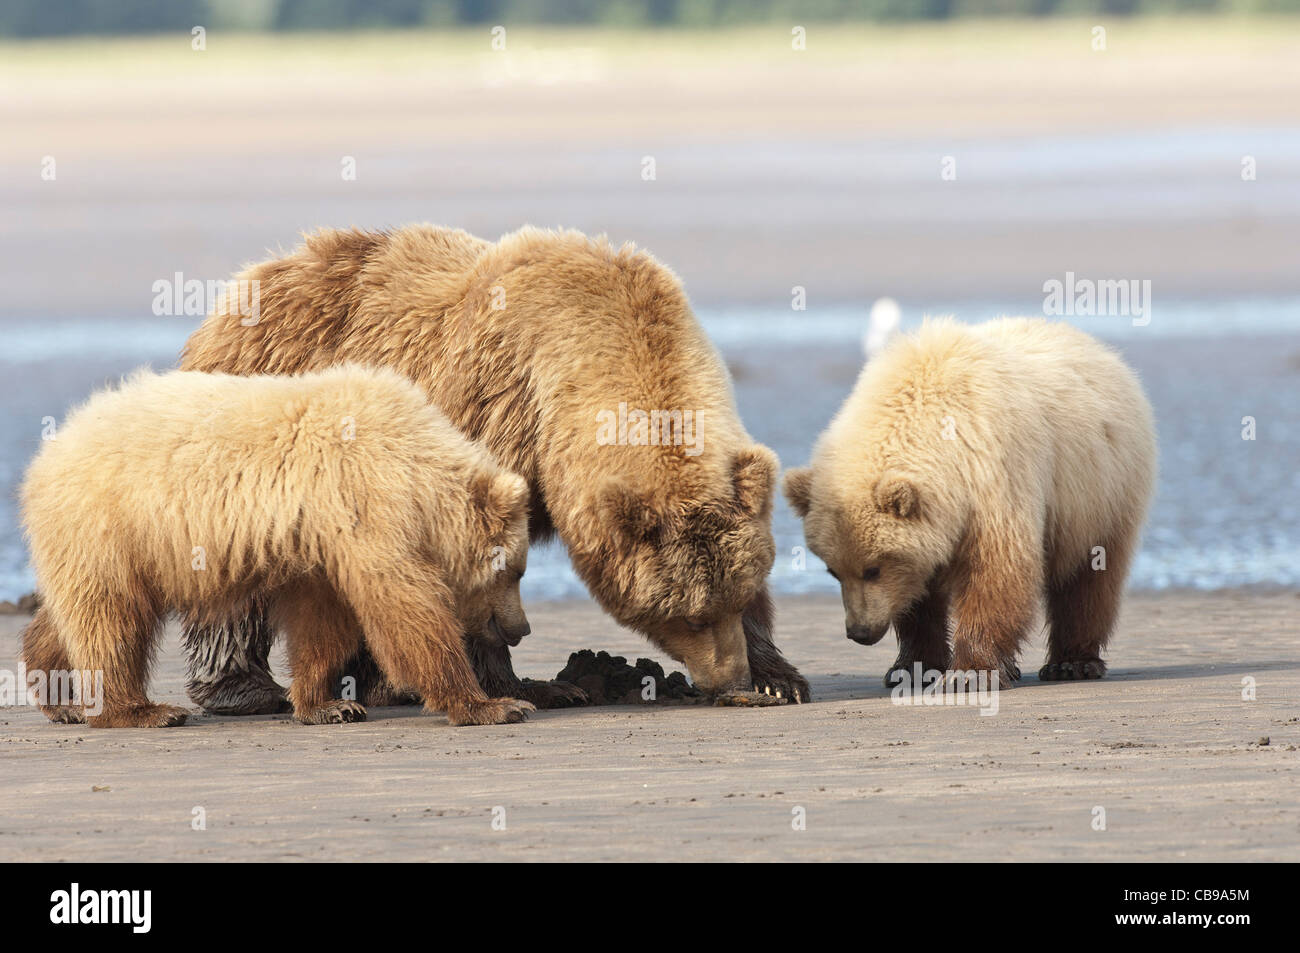 Stock photo of an Alaskan brown bear clamming with her cubs. Stock Photo